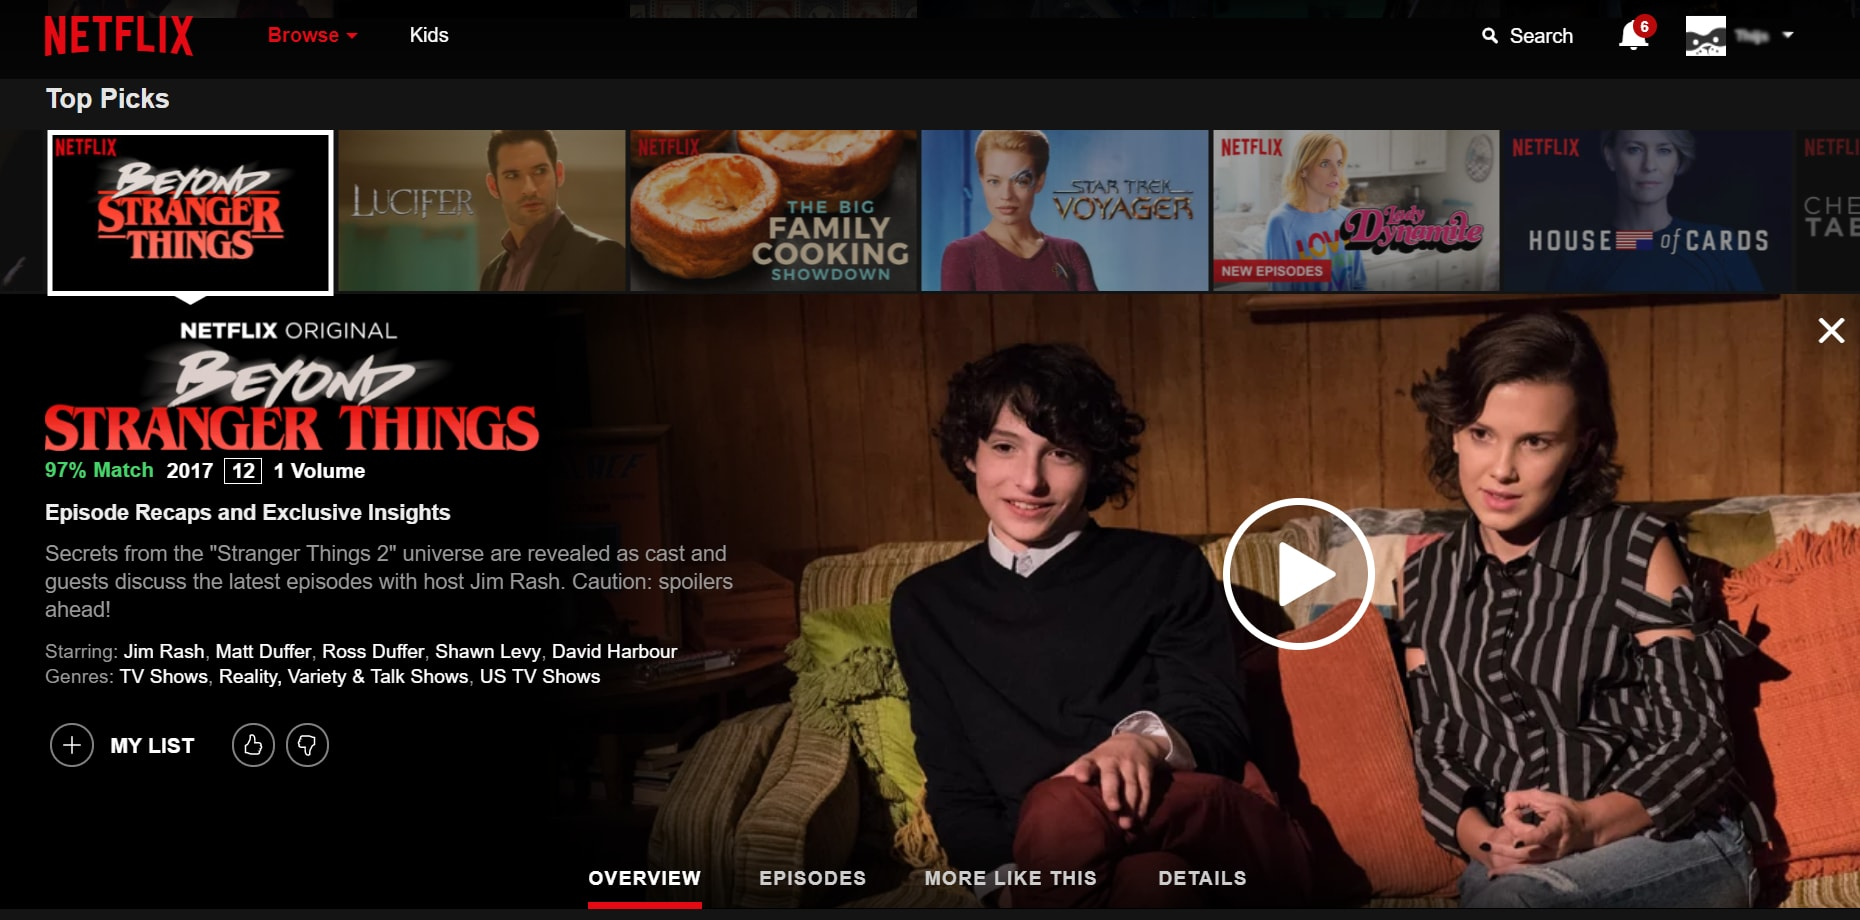 Recommendation algorithm on Netflix